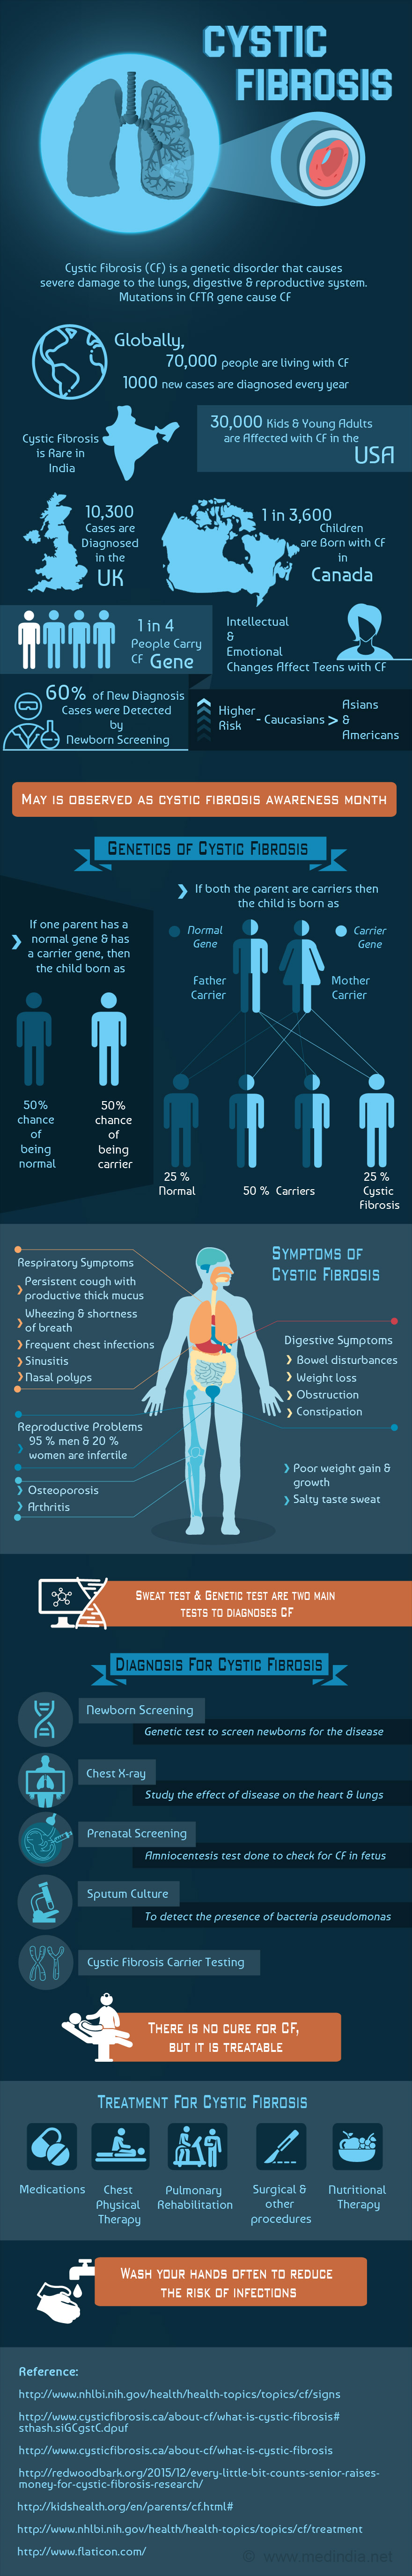 Cystic Fibrosis - Infographic